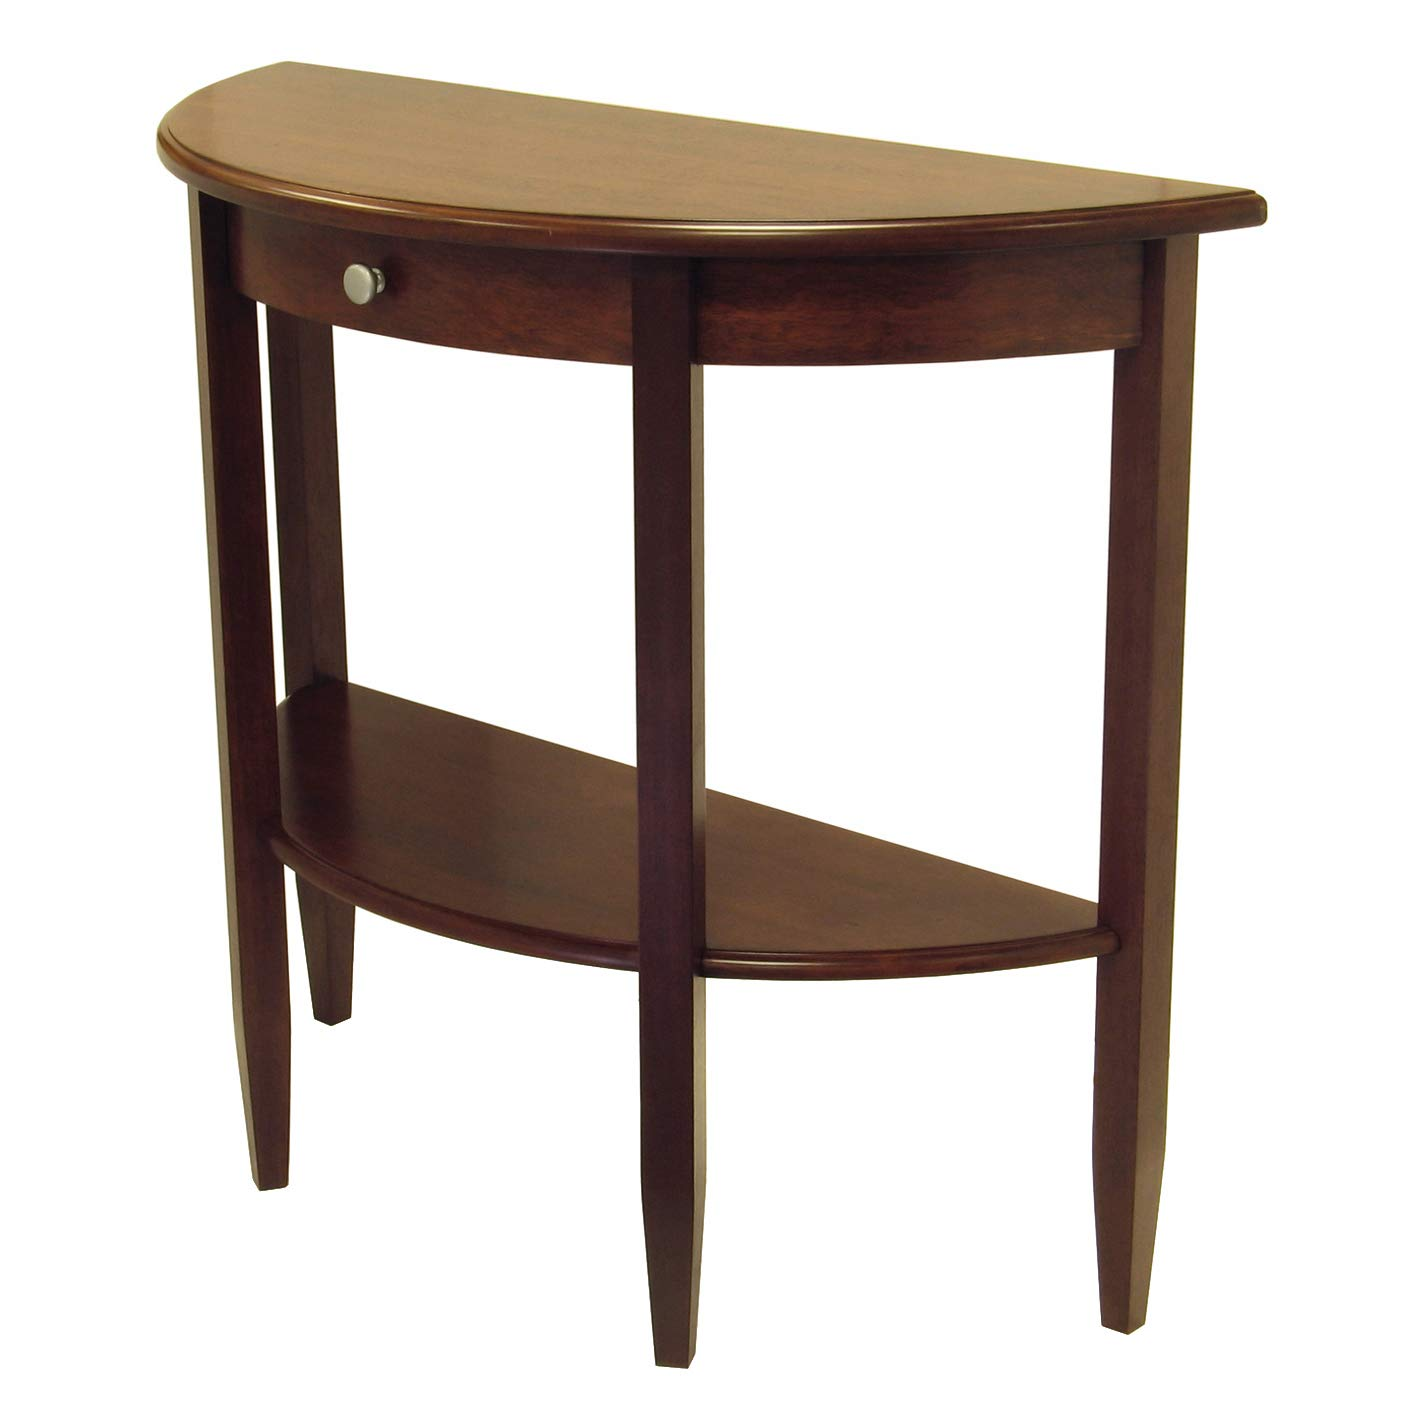 Winsome Wood 94039 Concord Occasional Table, Antique Walnut by Winsome Wood